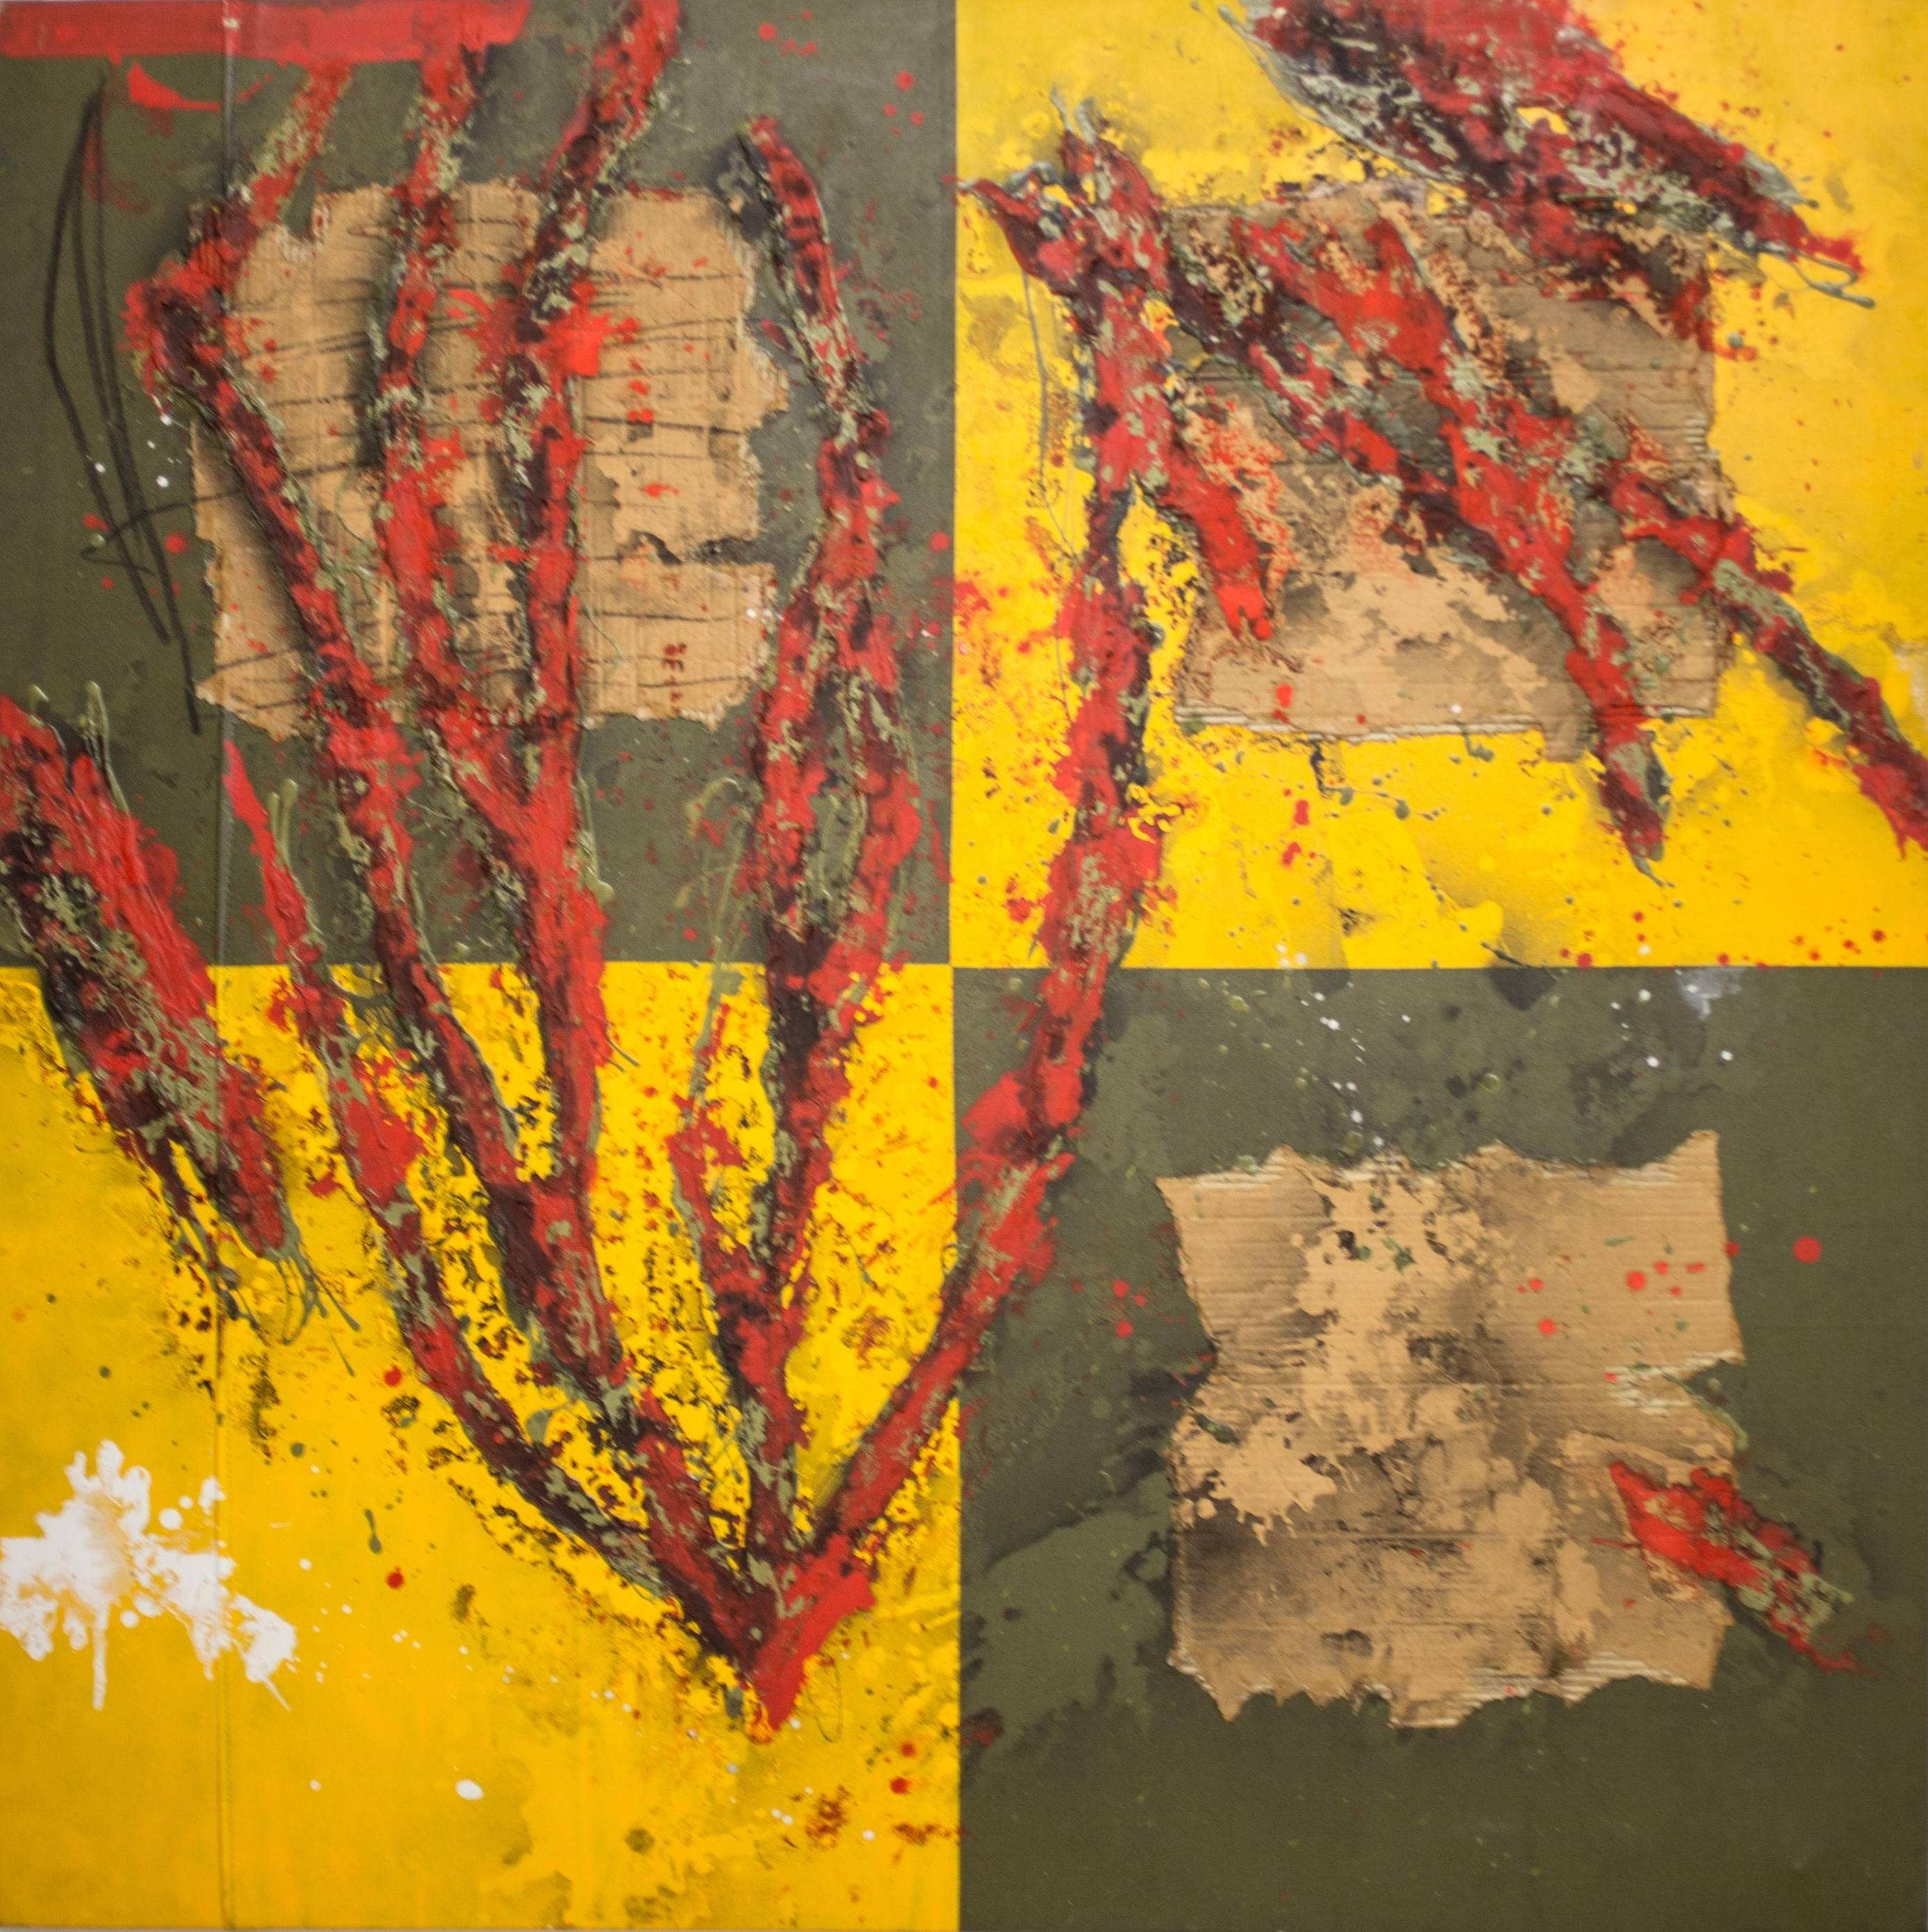 Colores para Lisboa, original Abstract Mixed Technique Painting by José Manuel Ciria